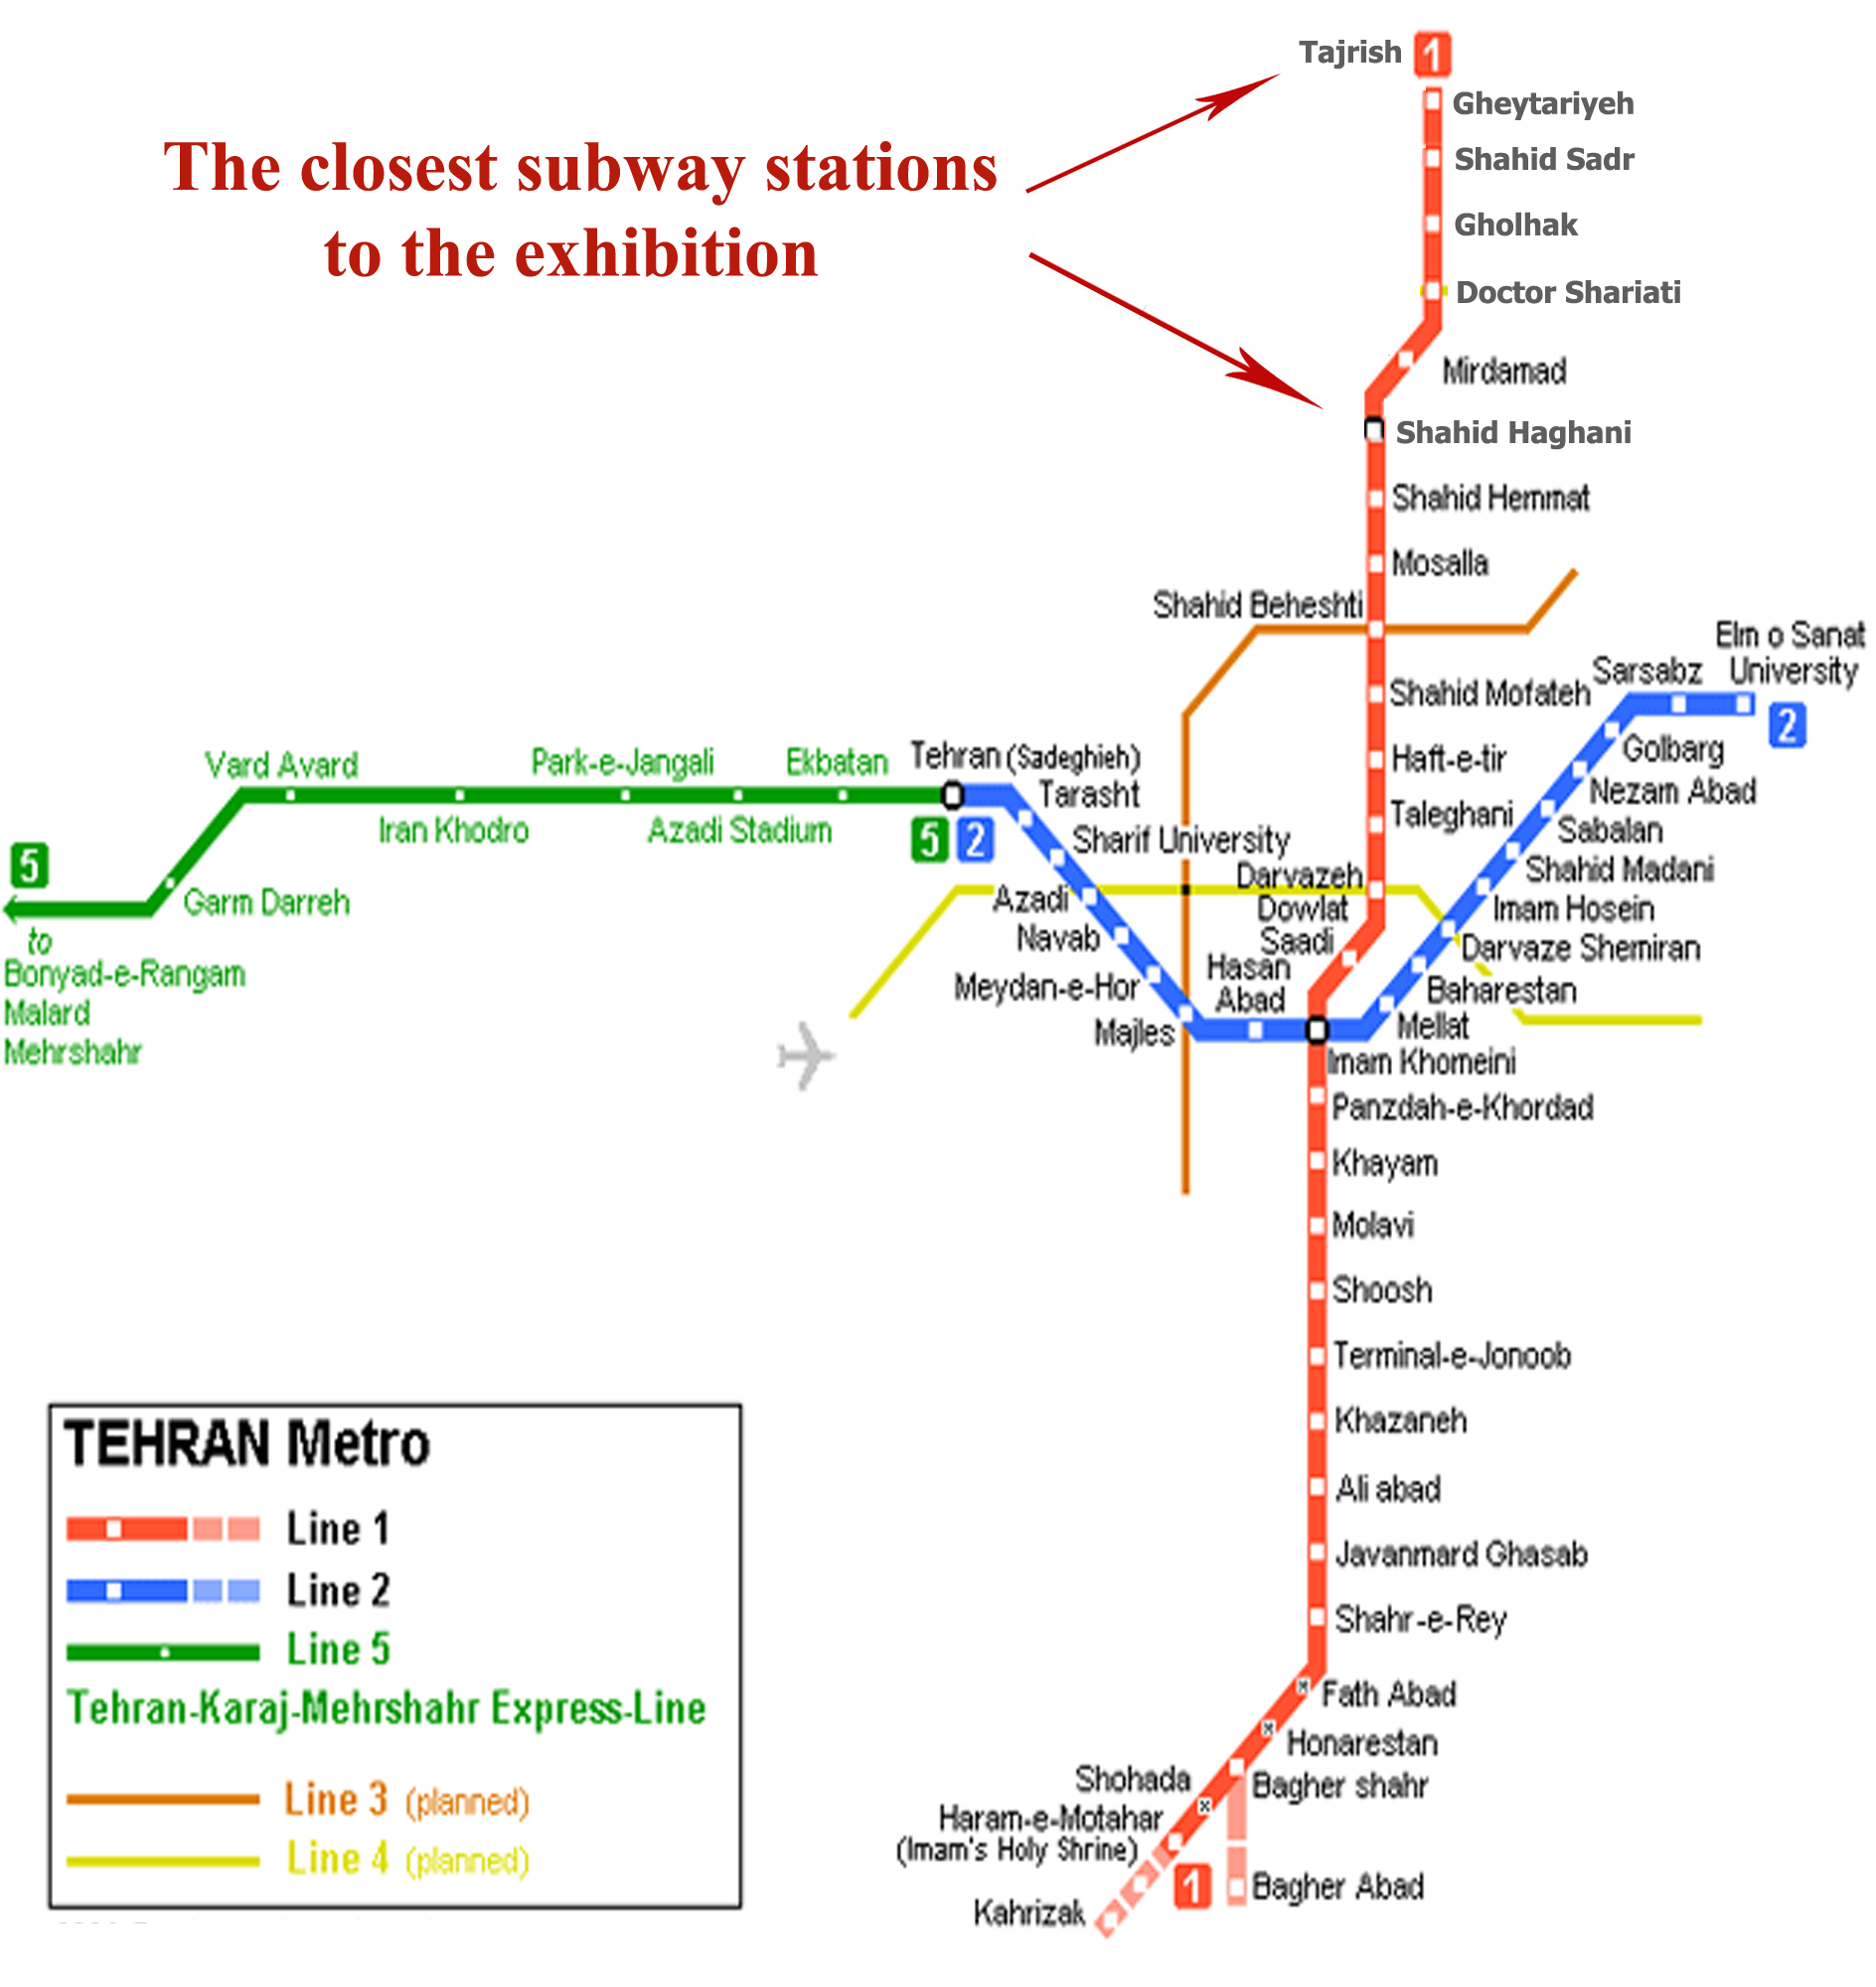 Tehran Subway Map.Iran International Exhibitions Co Access Roads Metro